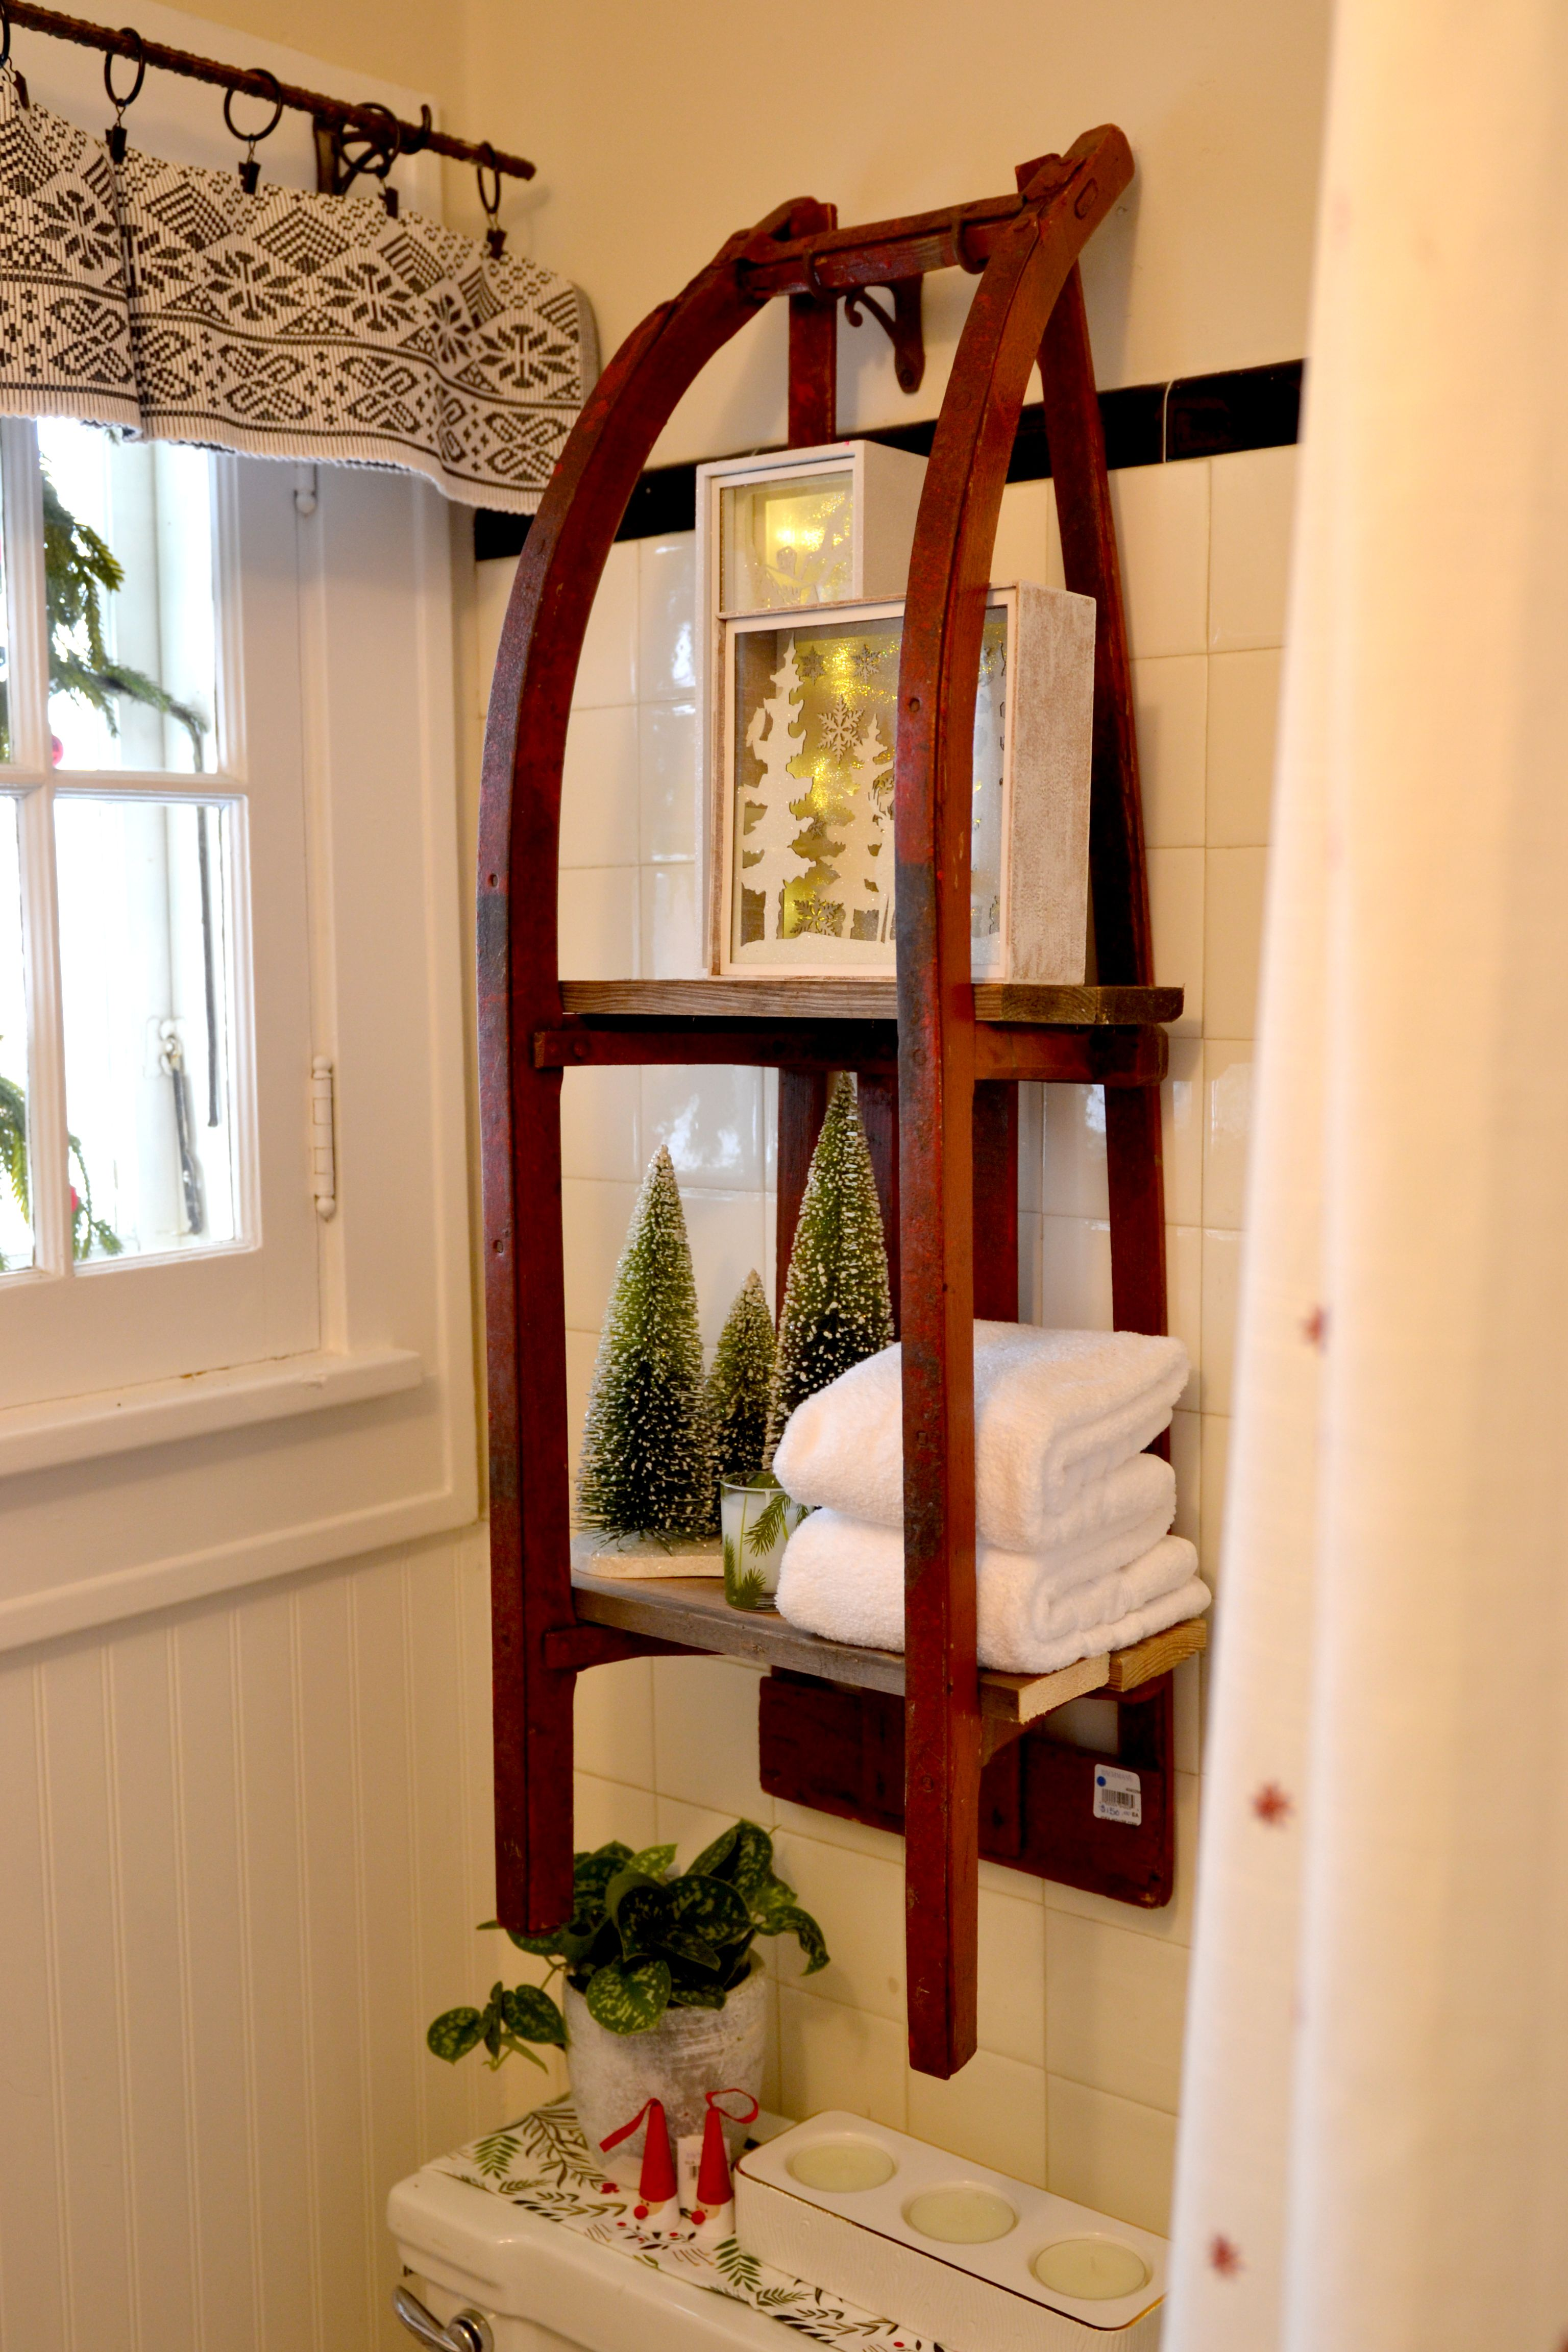 Old sled repurposed into a shelving unit. (As seen in